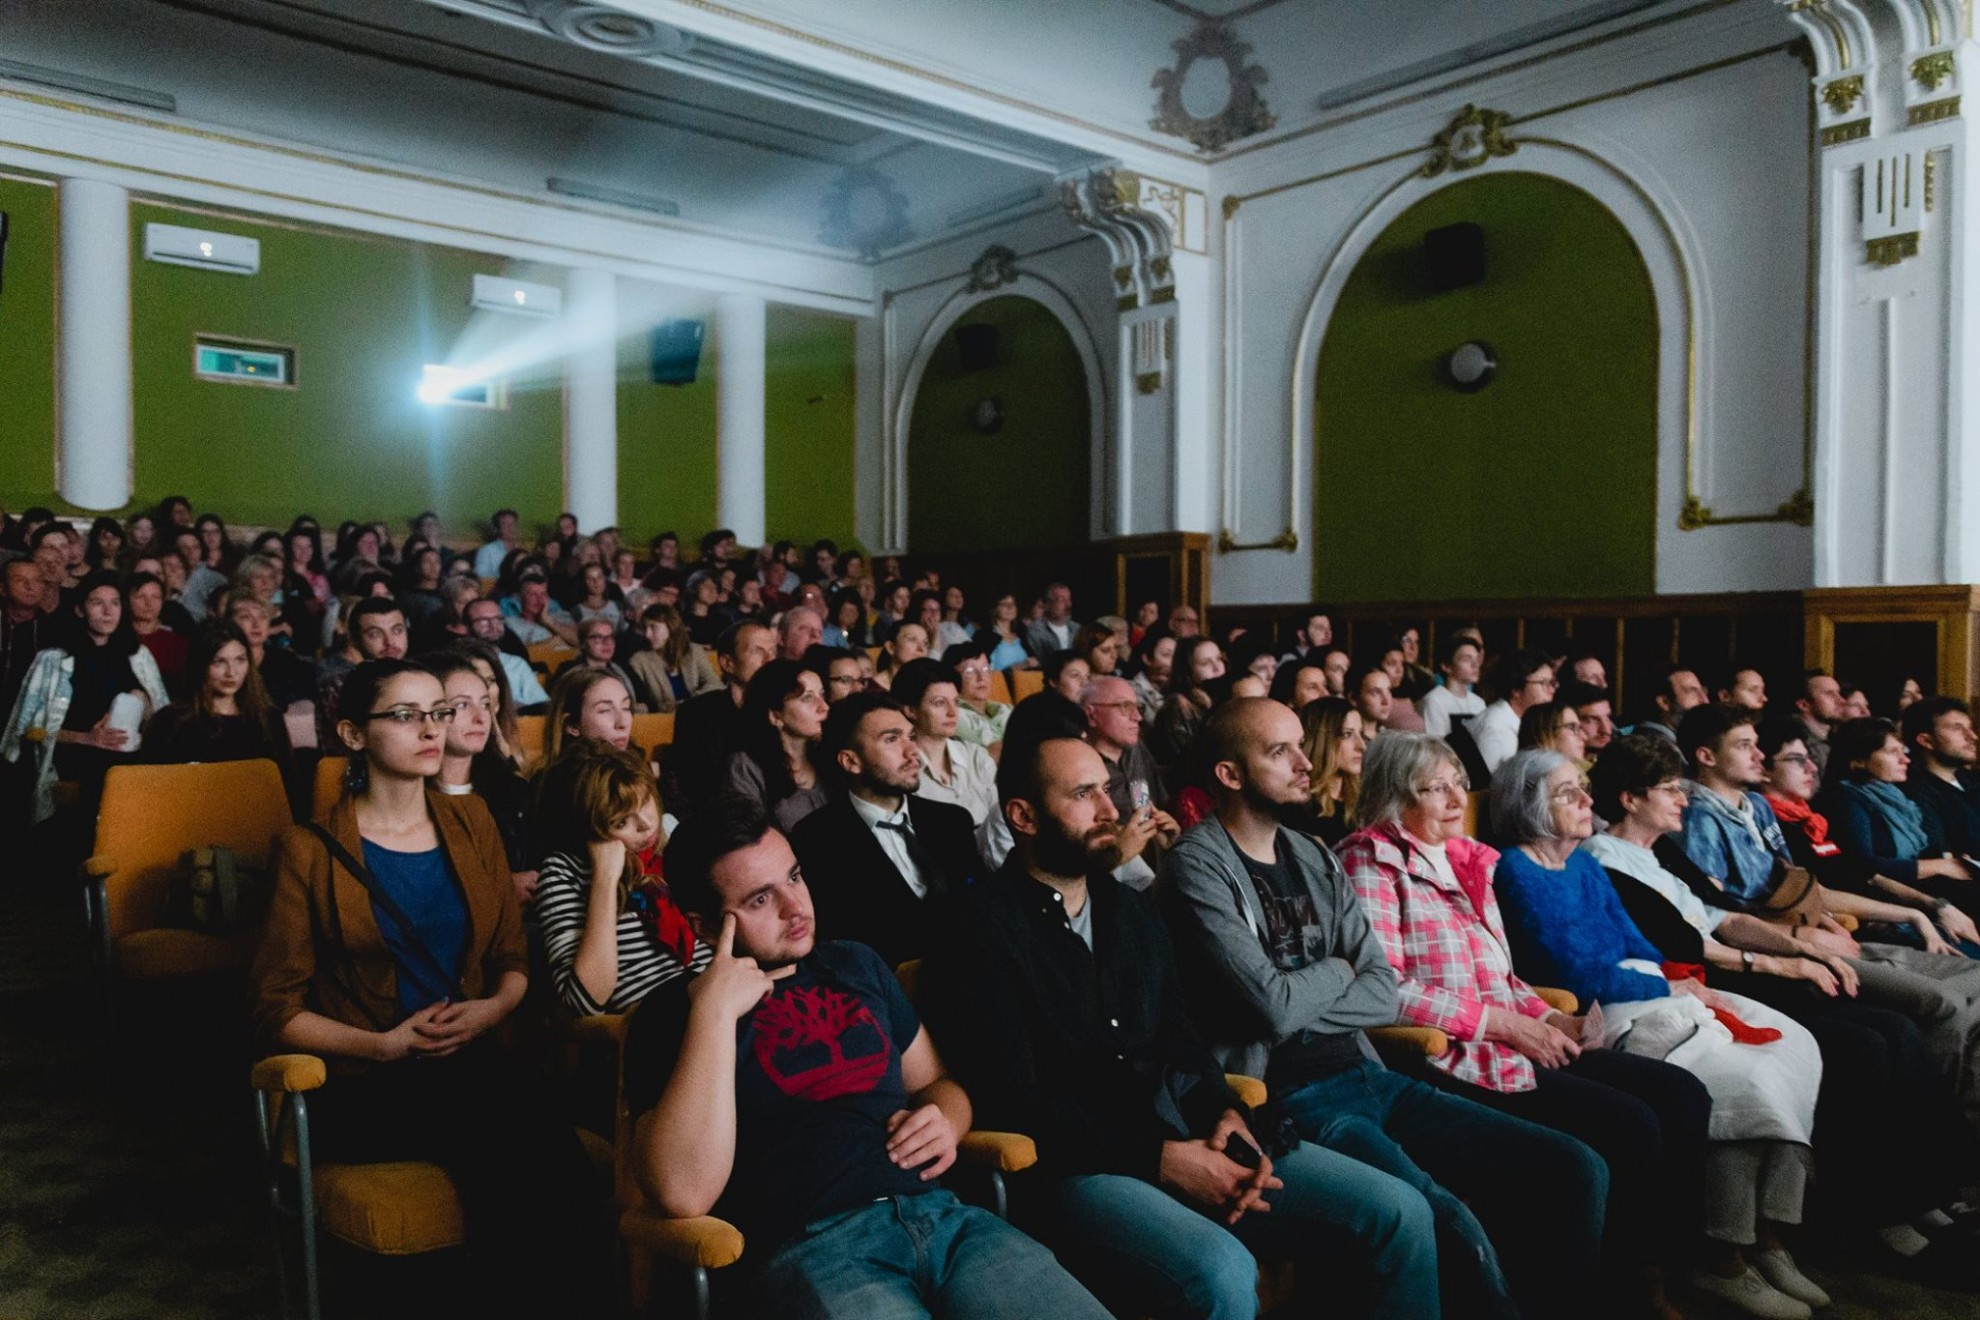 2017-Year of the cinema in Arad town